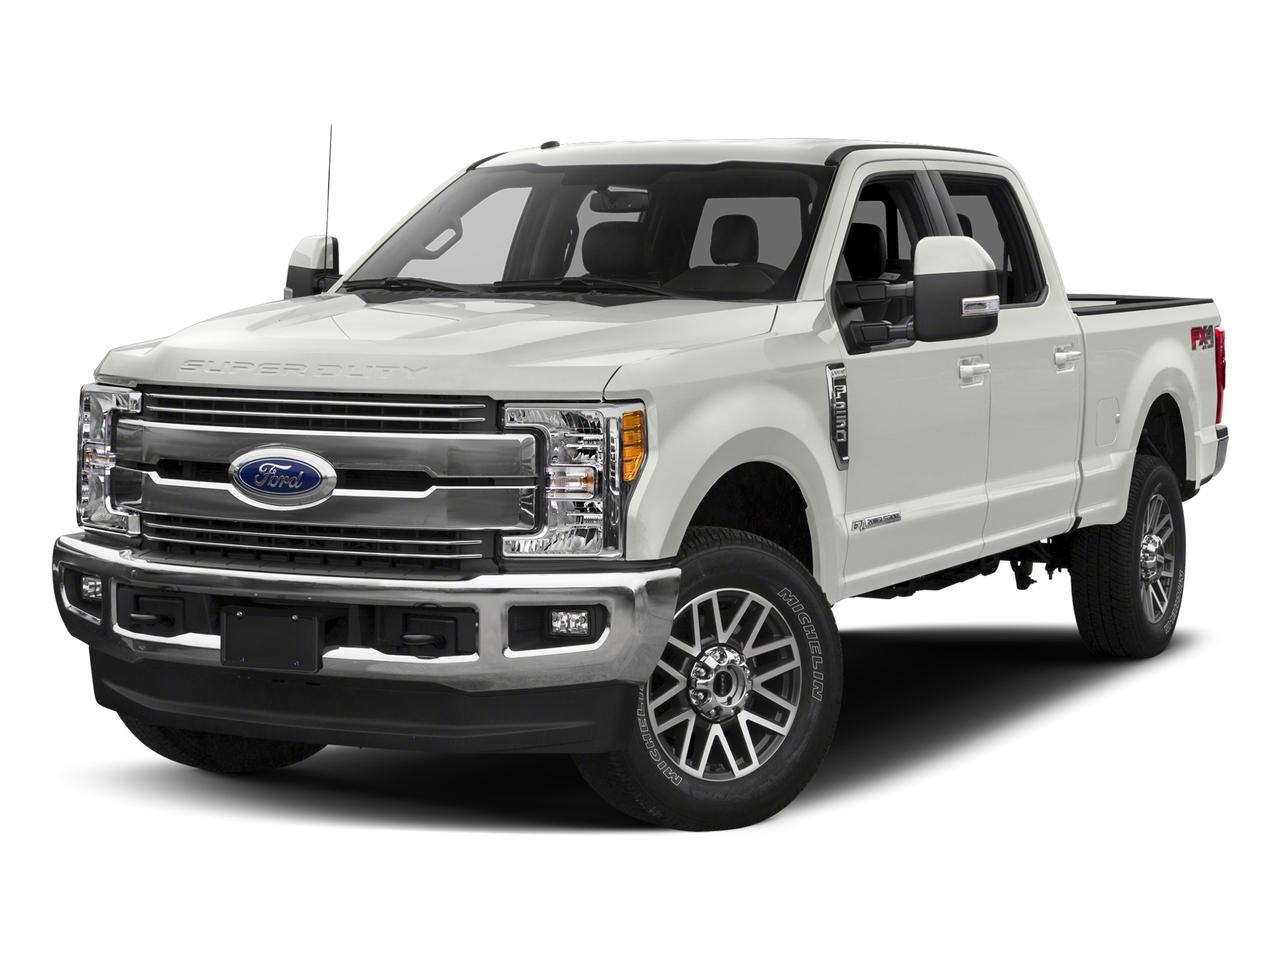 2017 Ford Super Duty F-250 SRW Vehicle Photo in Denver, CO 80123